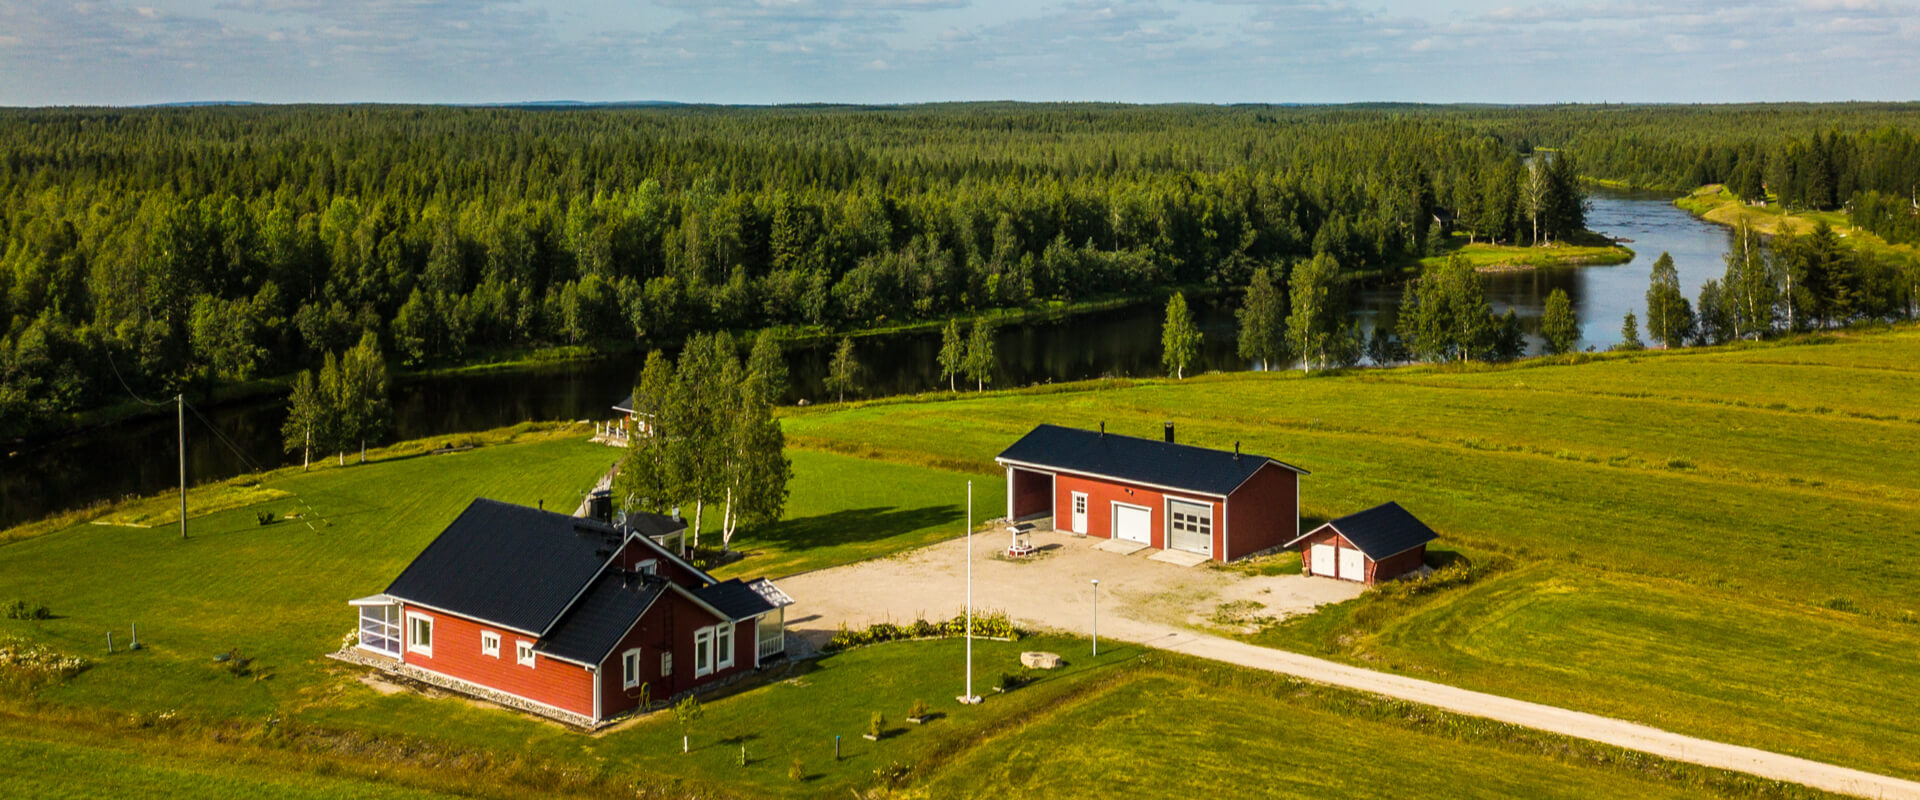 Aerial view of the Hommala cottage in summer